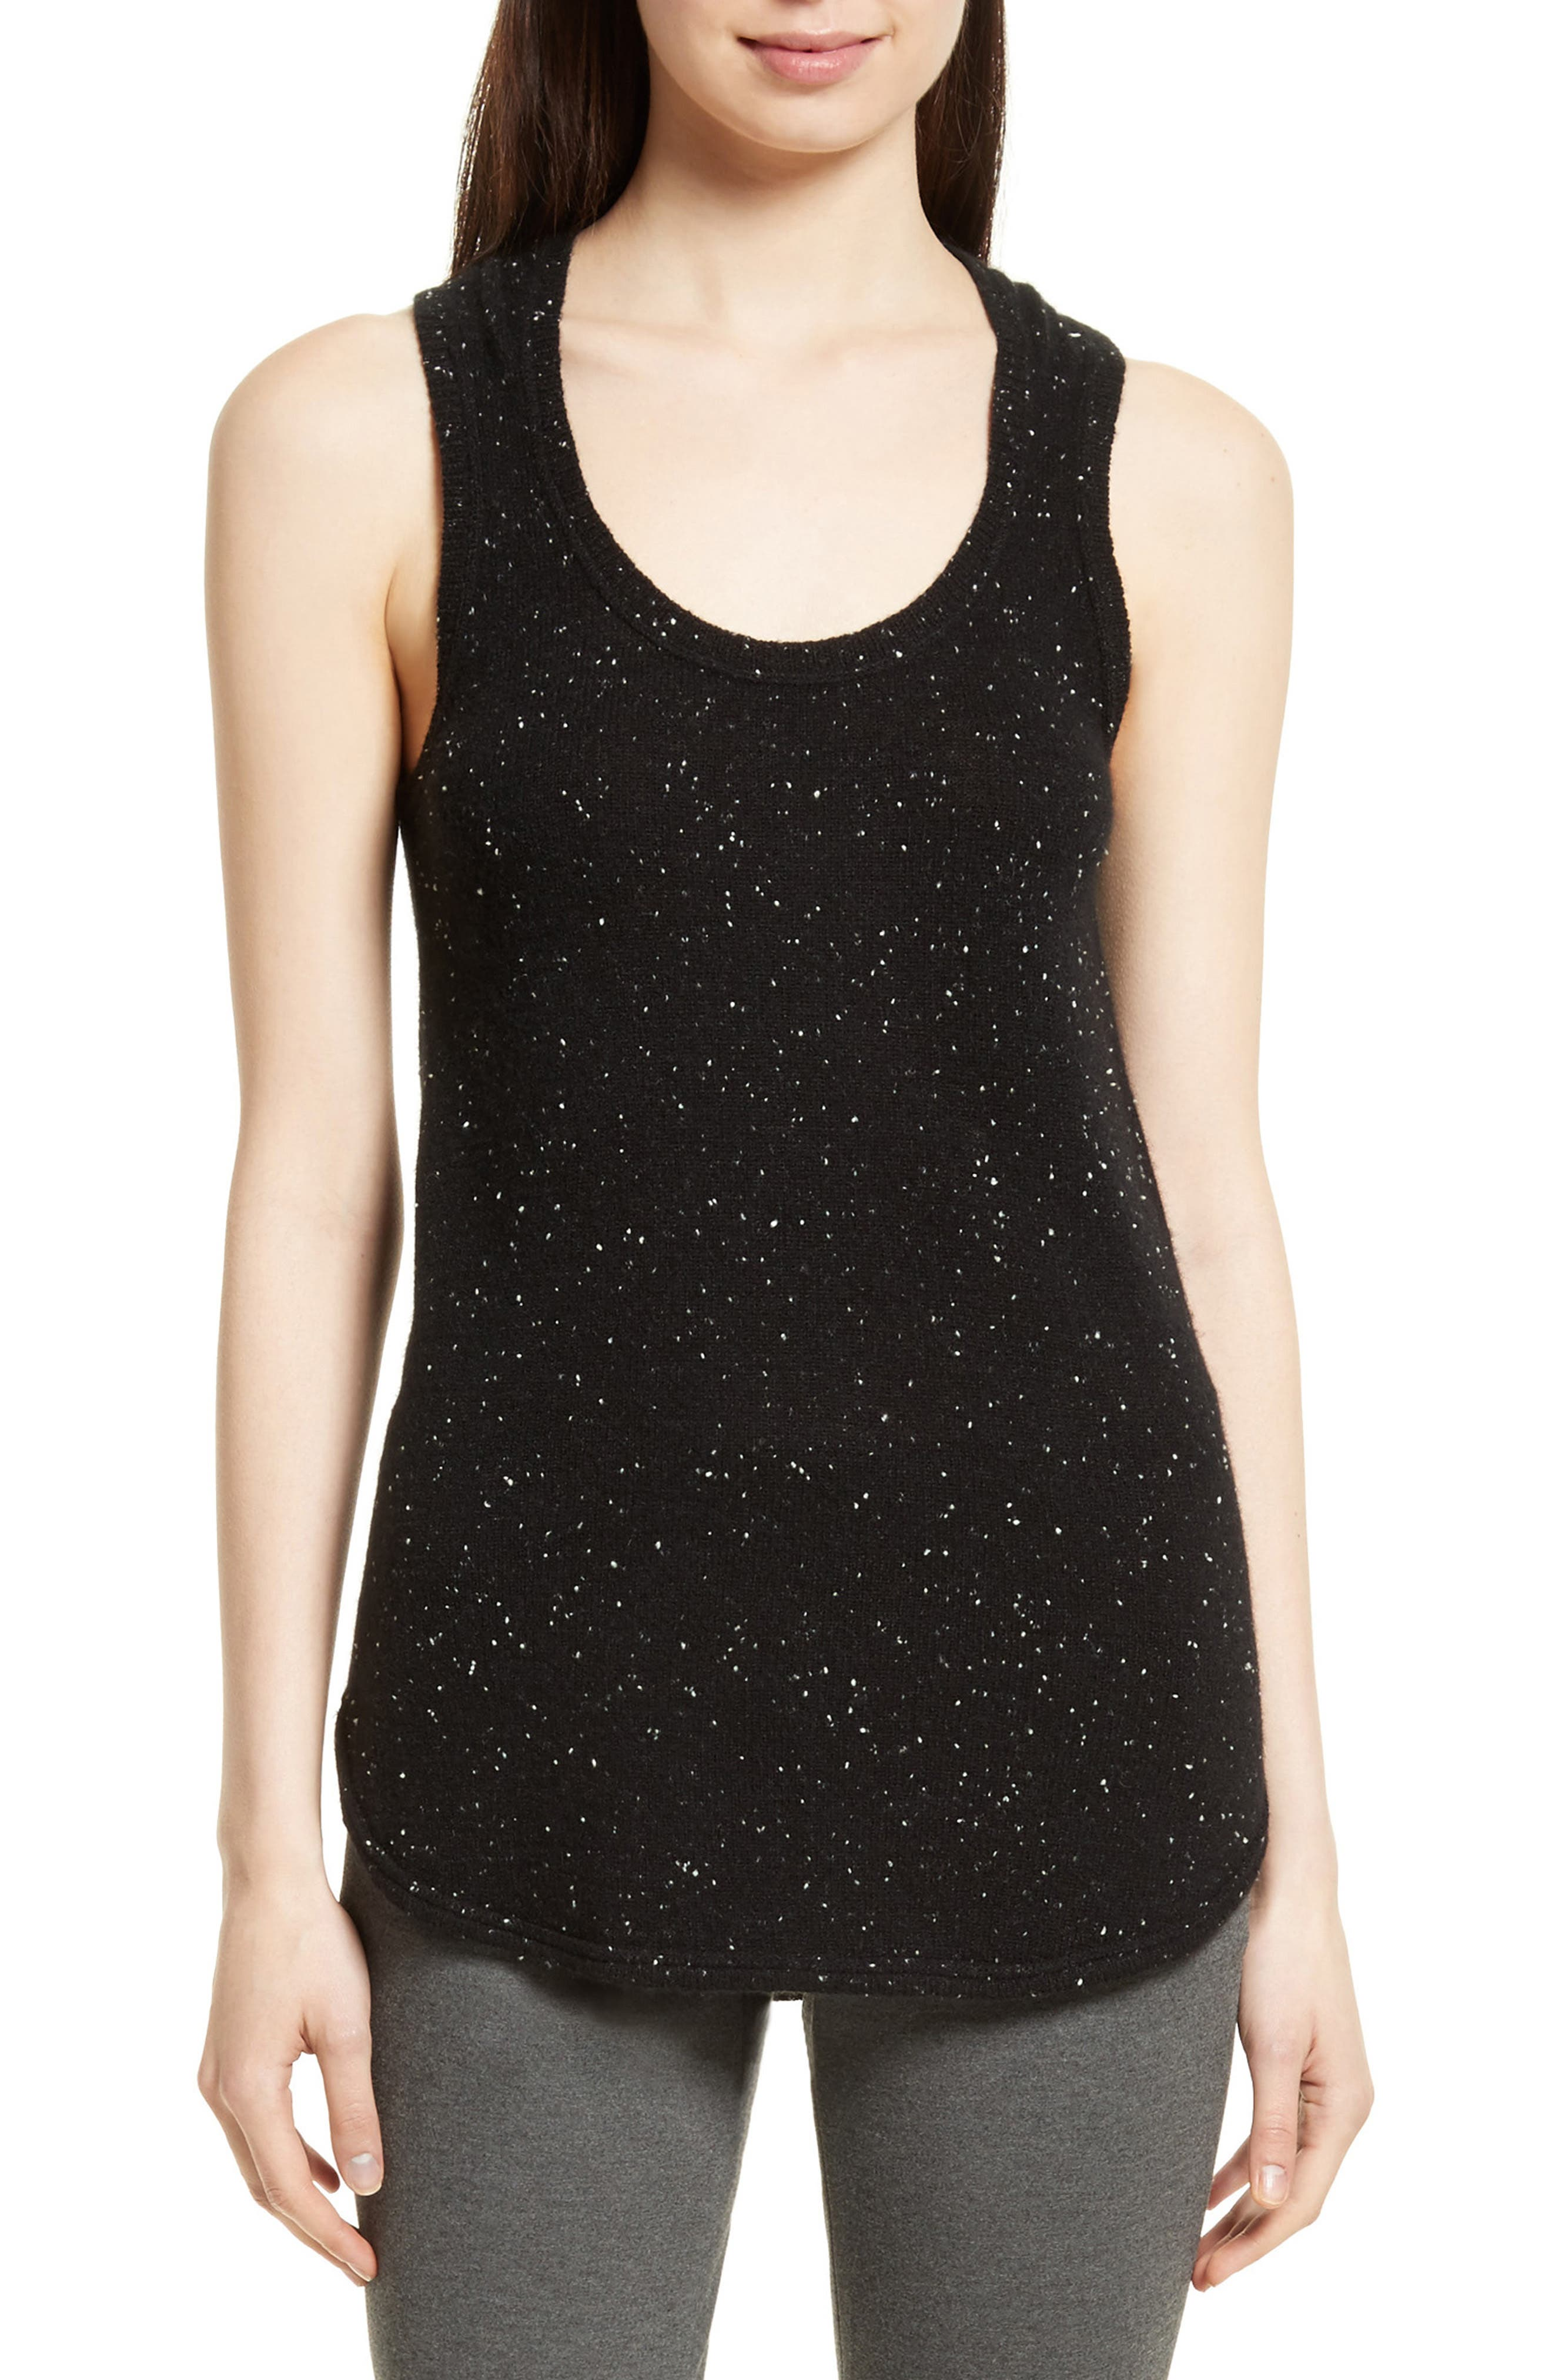 Donegal Cashmere Tank,                         Main,                         color, 014